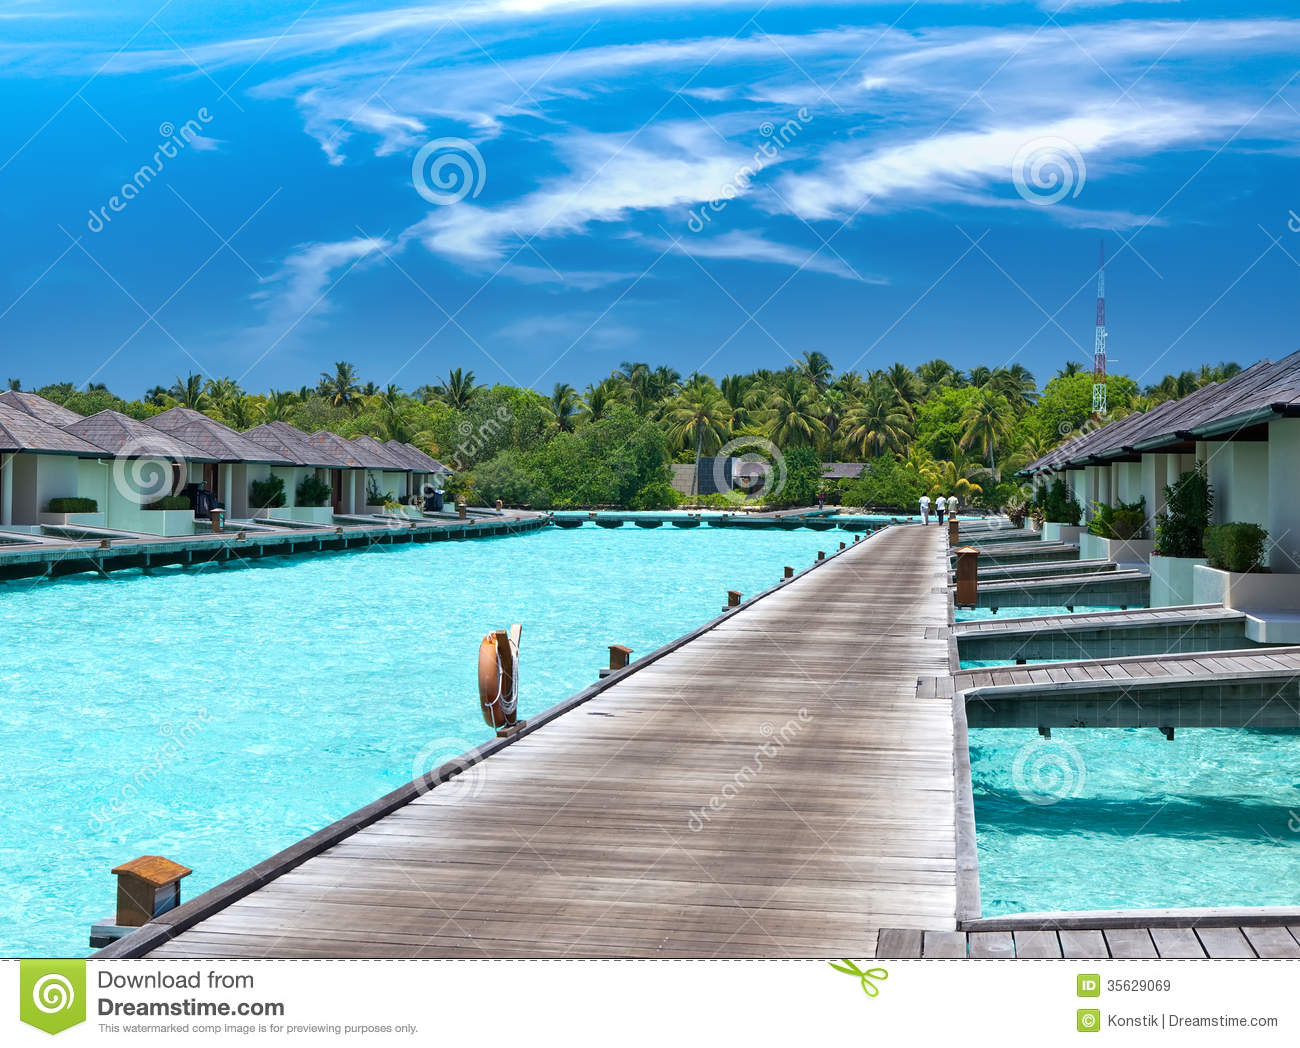 Aspire Modern Beach House 2 likewise Royalty Free Stock Images Houses Piles Sea Maldives Tropical Landscape Sunny Day Image35629069 additionally 166 as well Thoresby Hall moreover Sequin Coach House Images. on design of houses plan